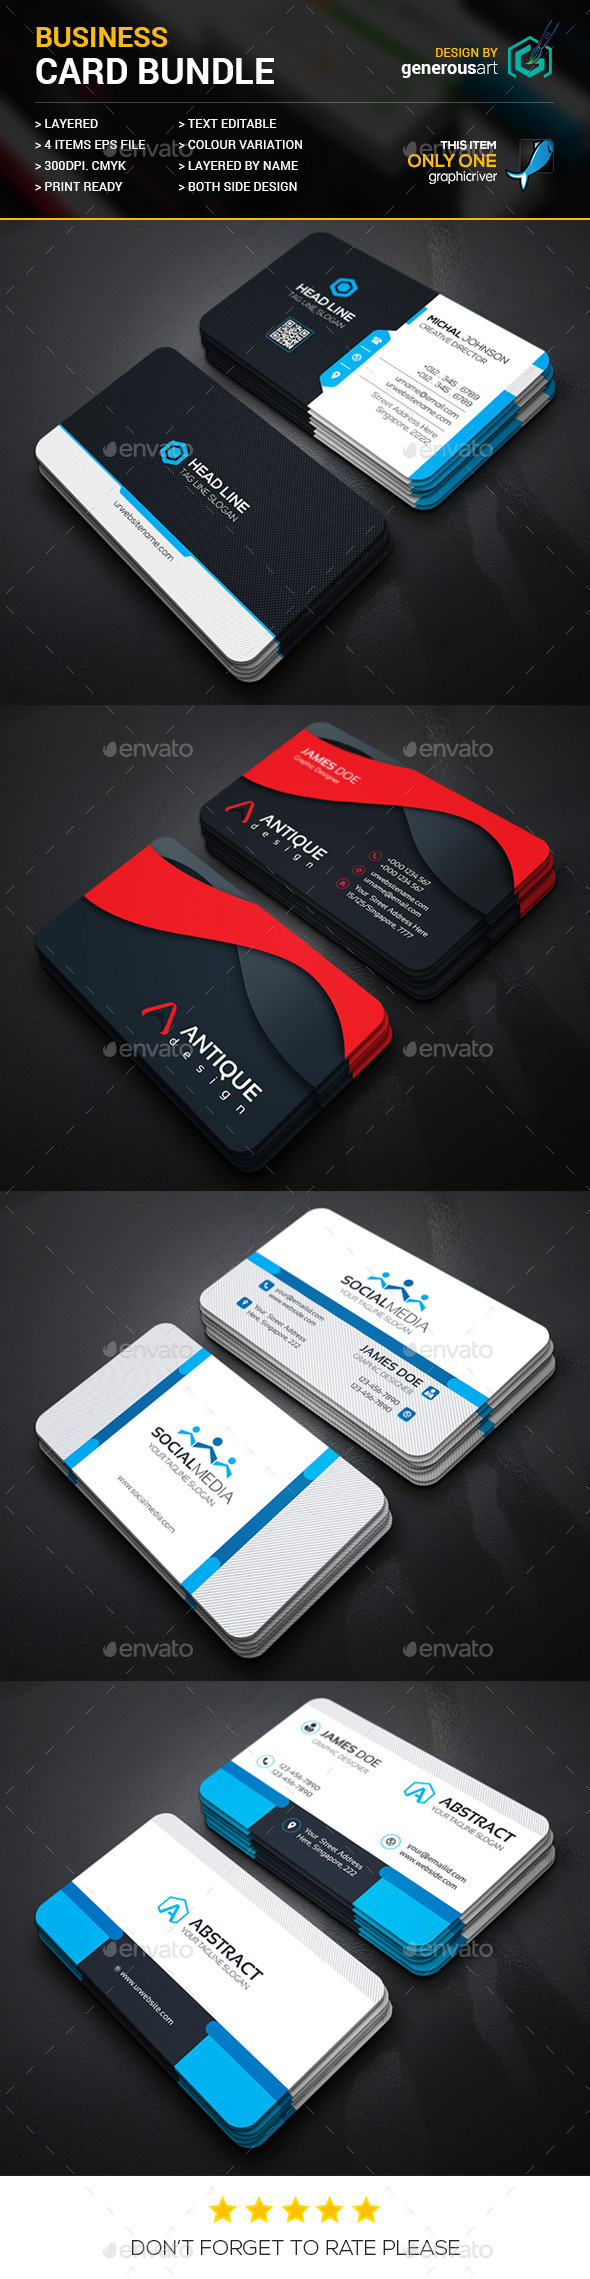 Business Card Bundle 4 in 1 Vol.21